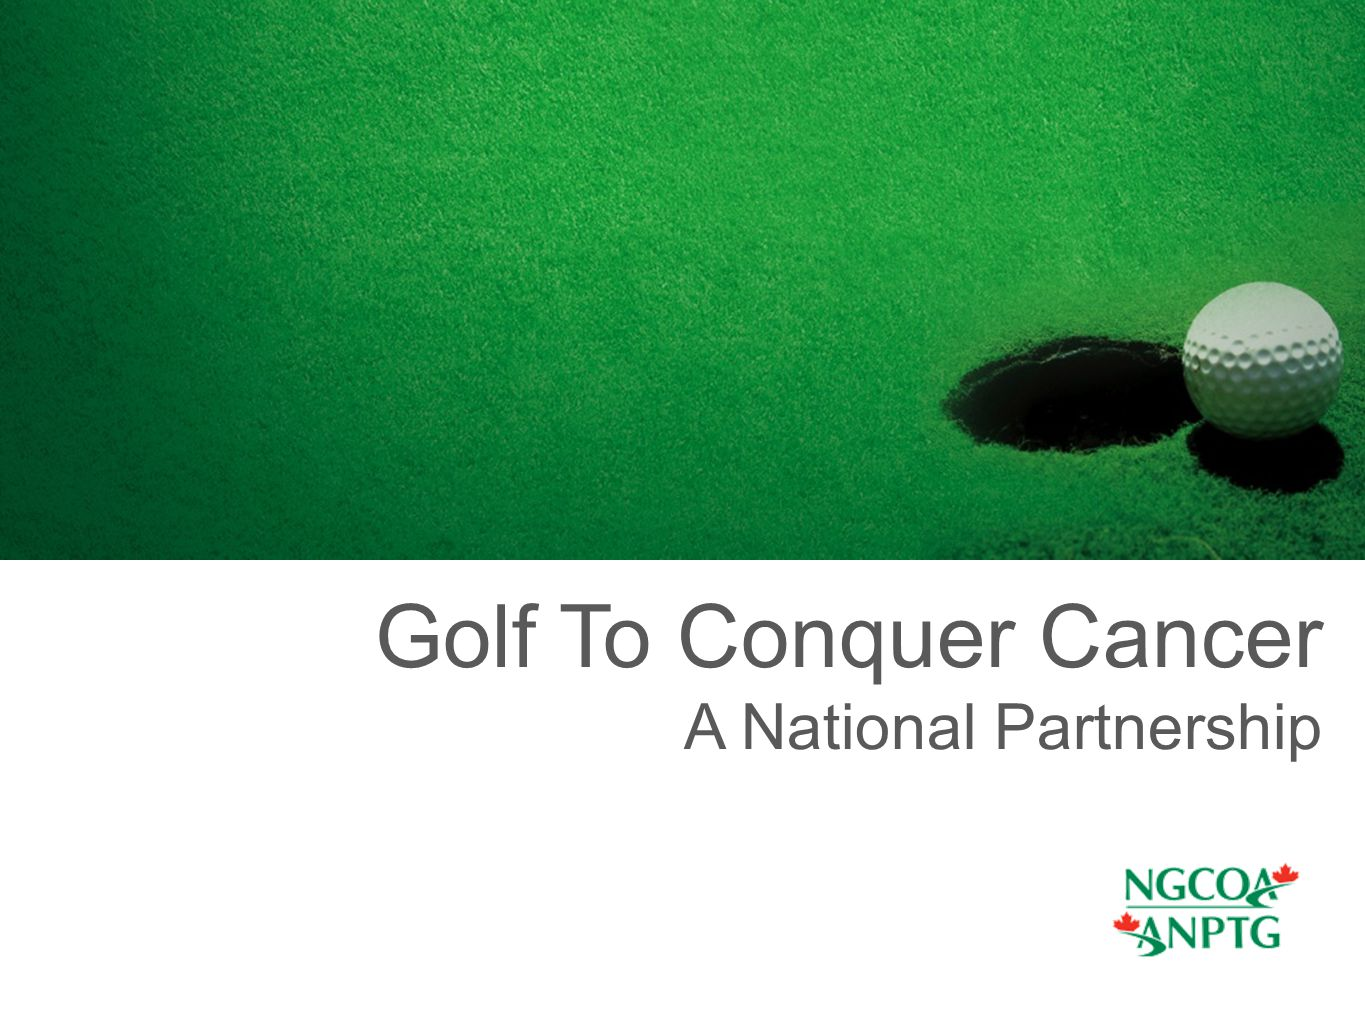 Golf To Conquer Cancer A National Partnership